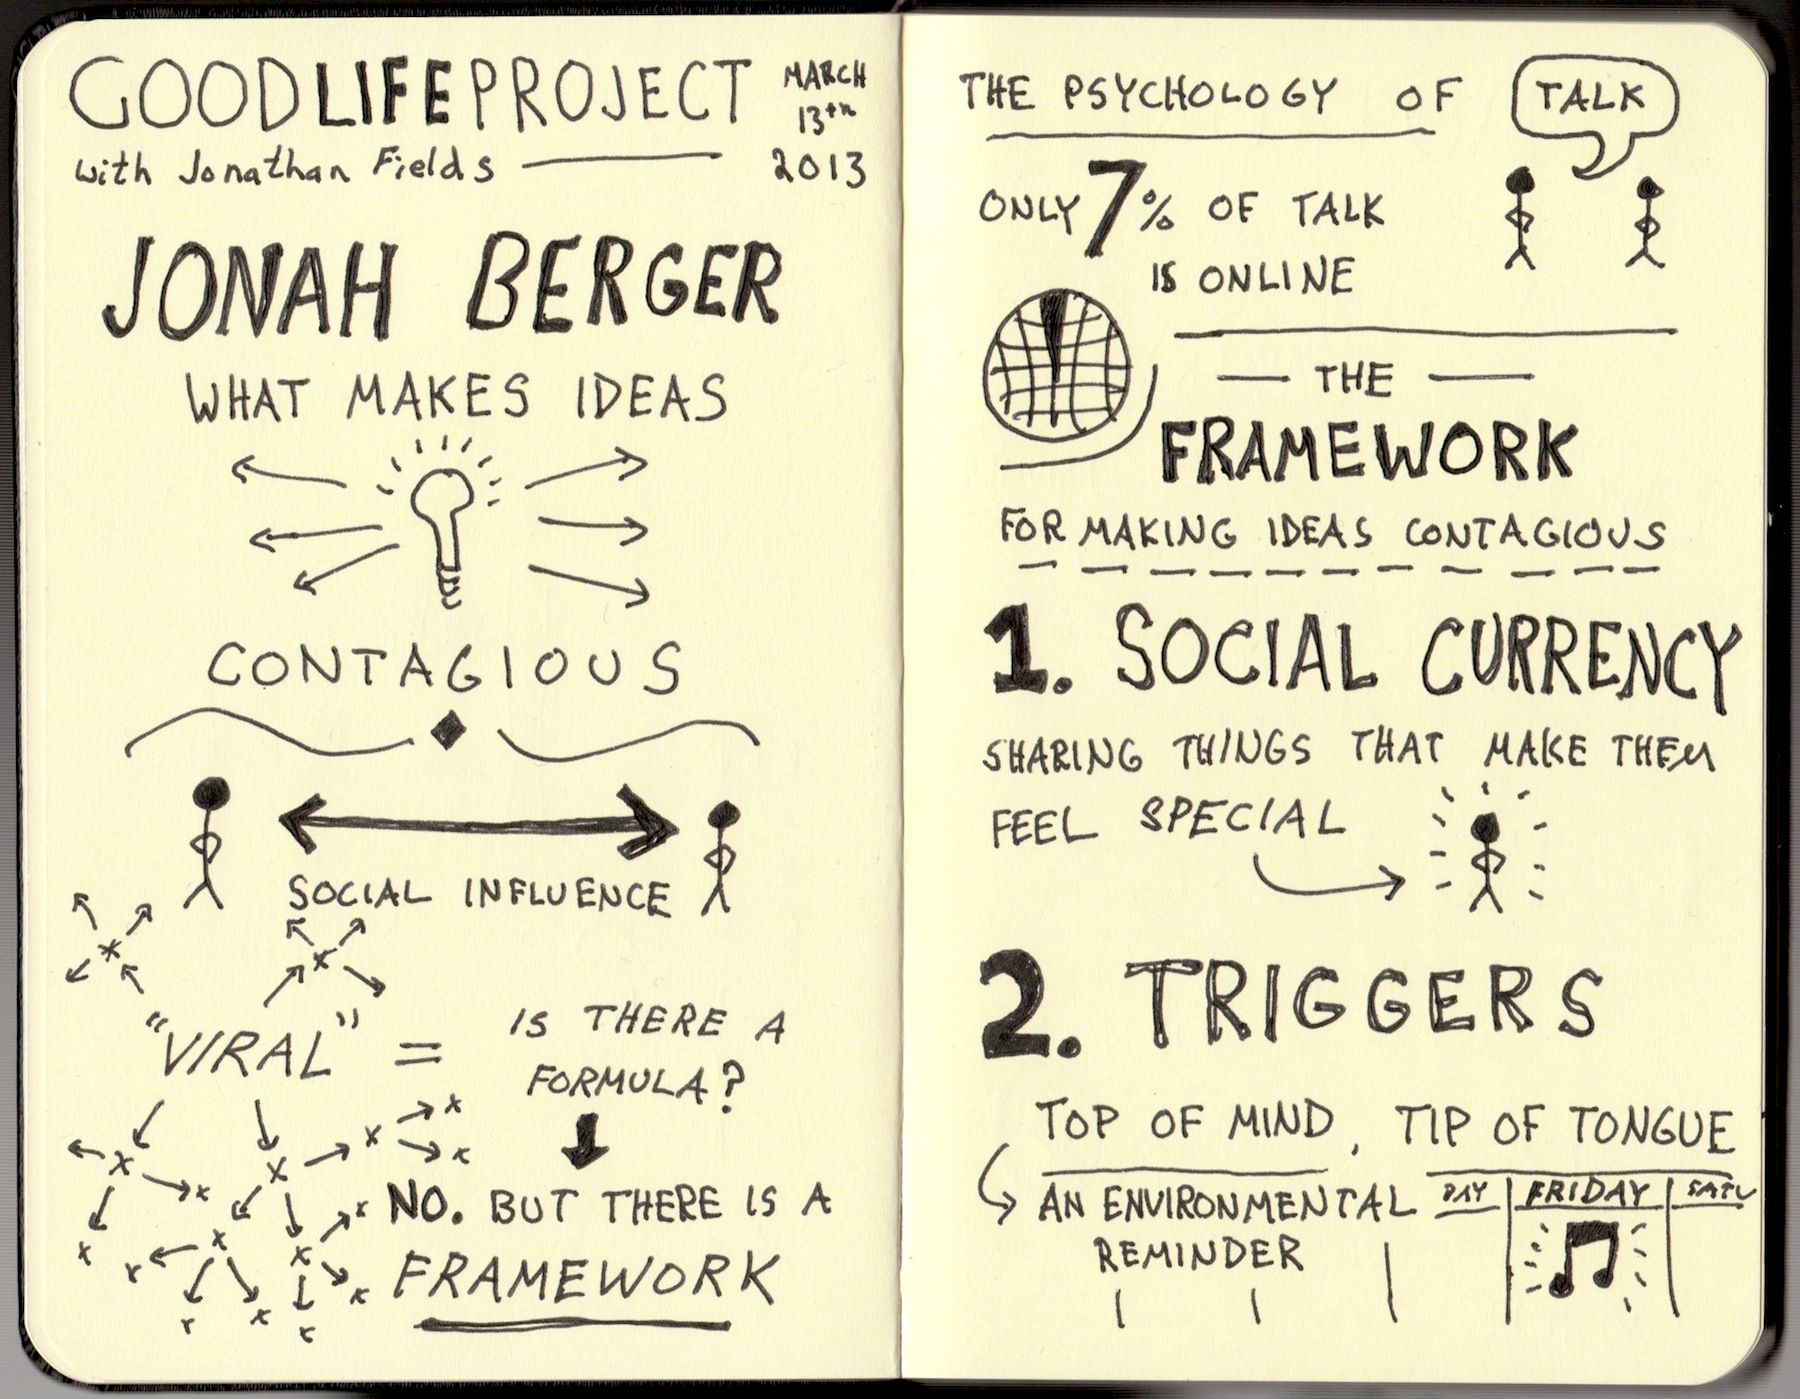 Good Life Project Sketchnotes - Jonah Berger (1) - Jonathan Fields - Doug Neill - framework for making ideas contagious, social currency, triggers, emotions, public, practical value, stories